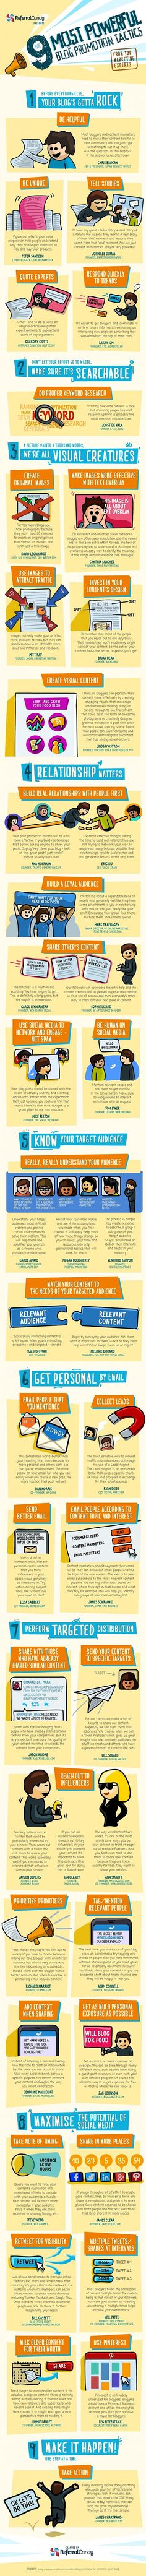 The 9 Most Powerful #Blog Promotion Tactics [#Infographic]